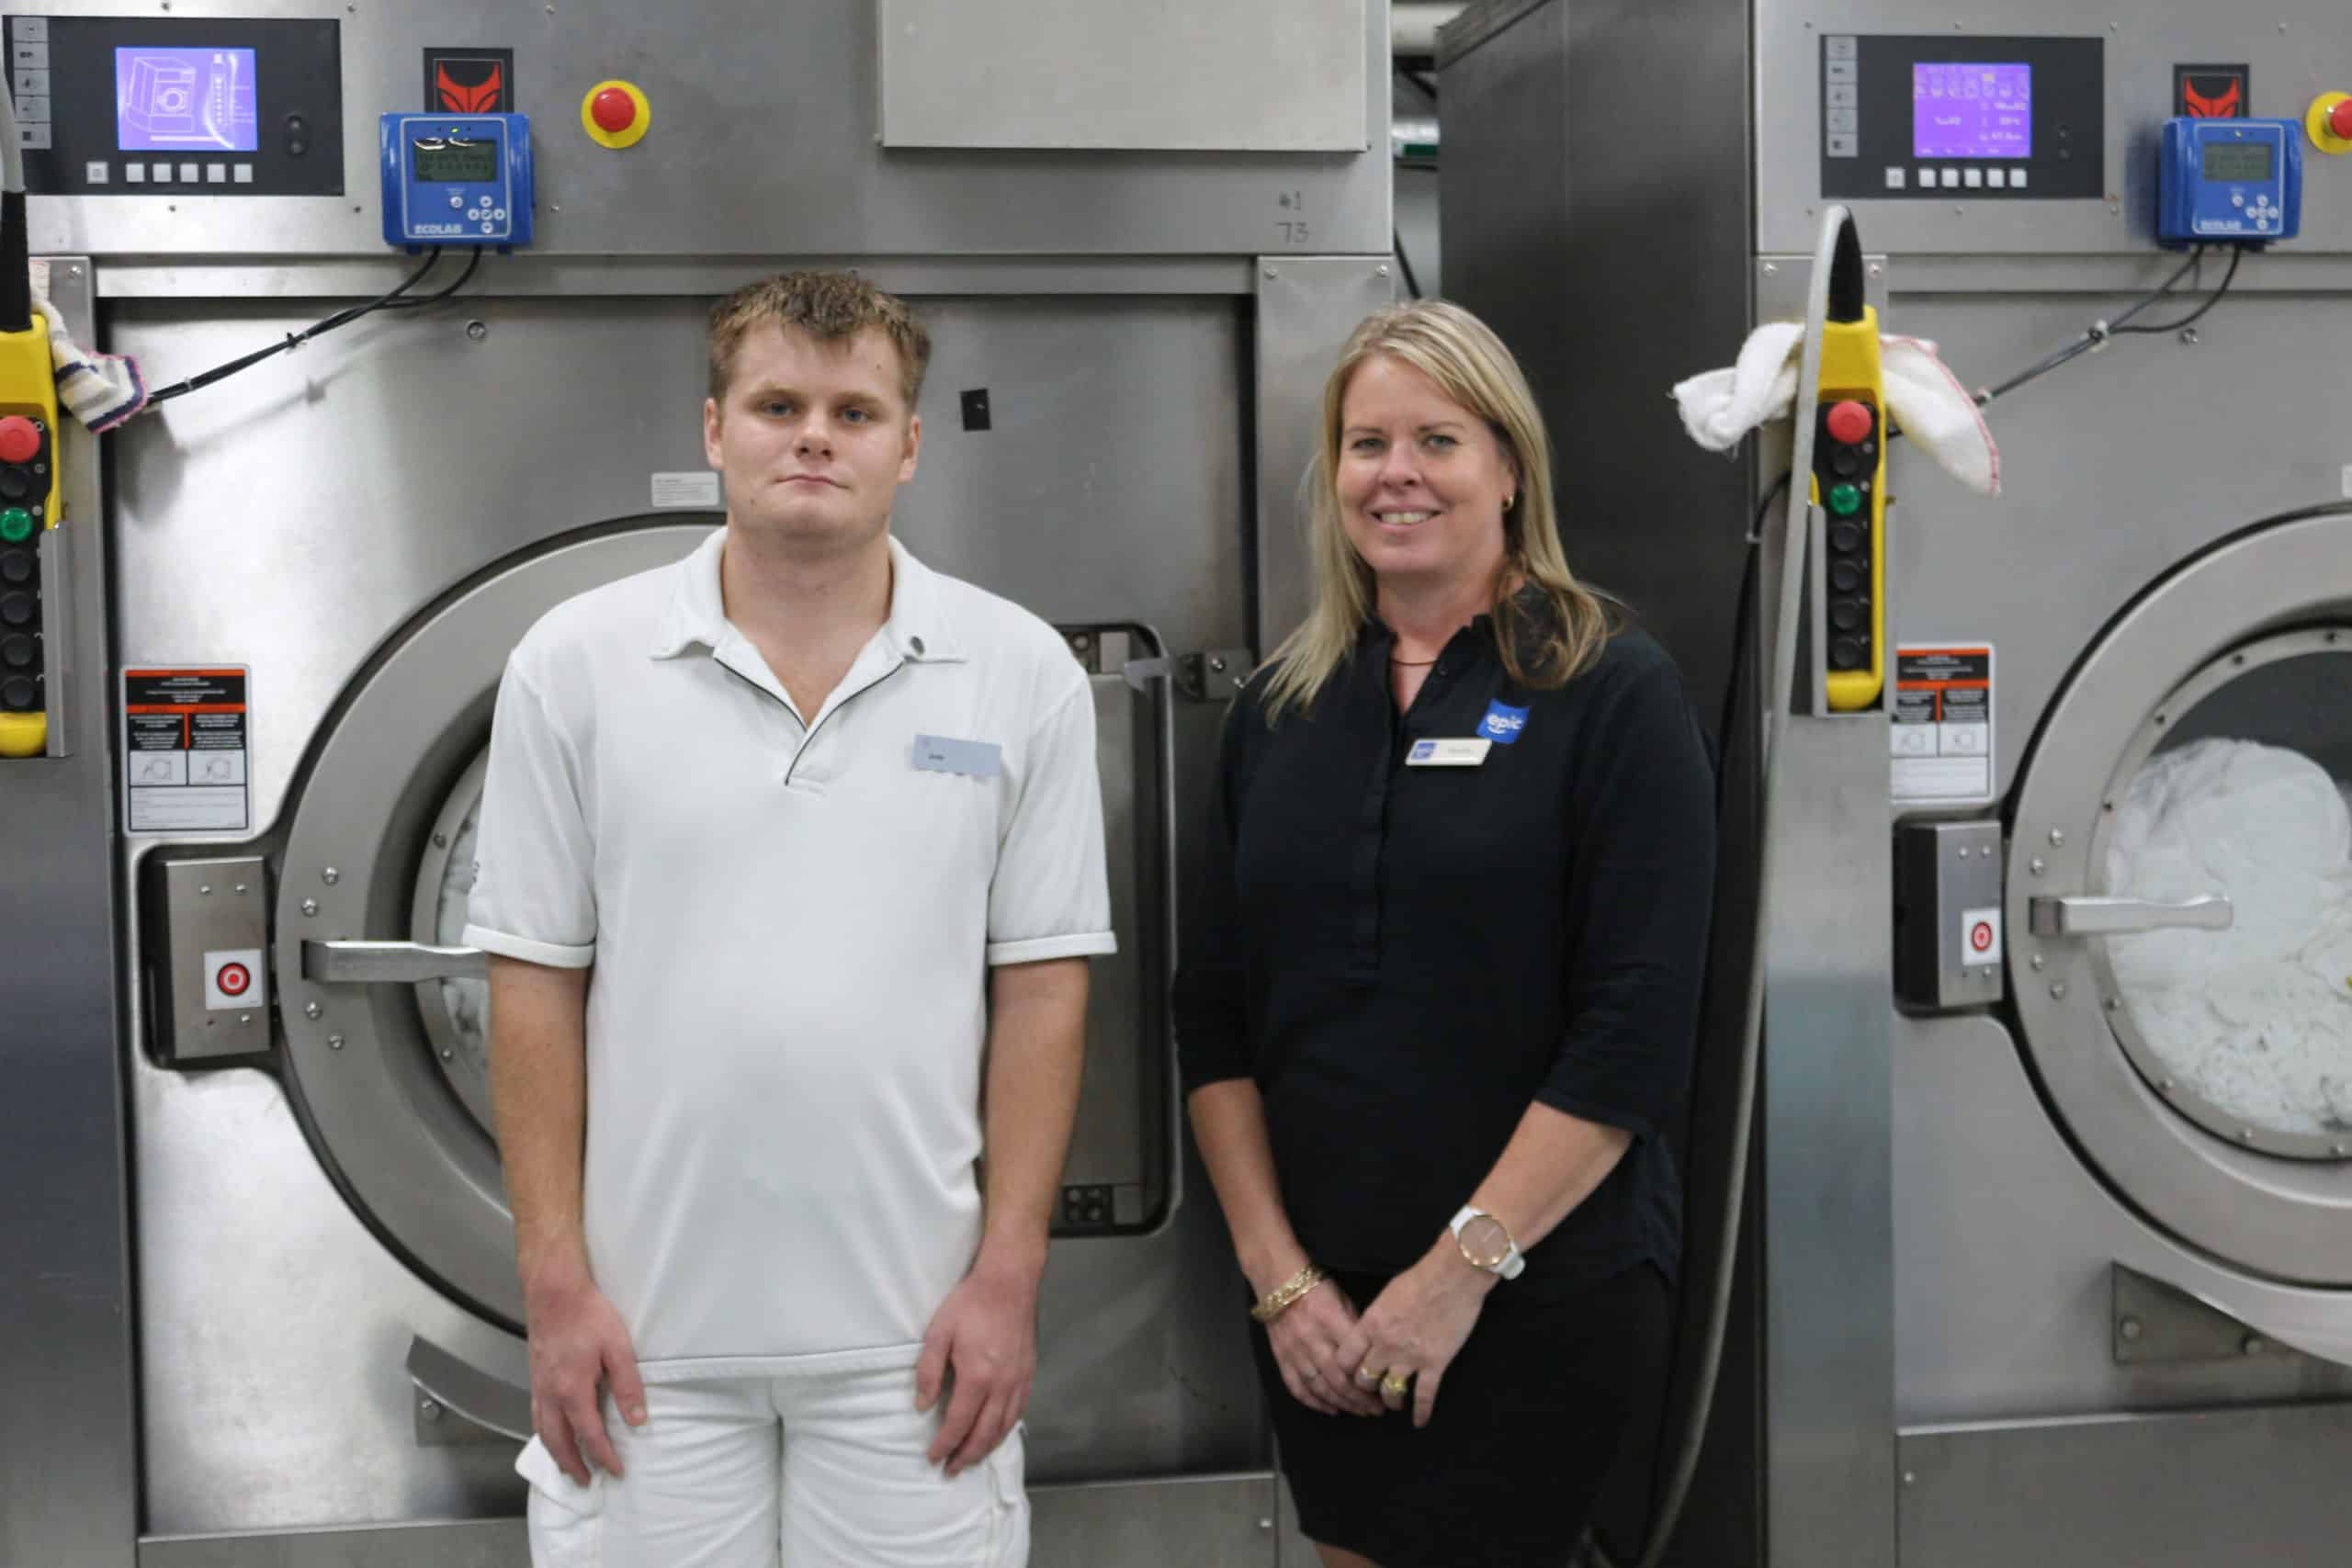 Young man in white polo shirt and shorts stands next to female EPIC staff member in black shirt and skirt, in front of large washing machine